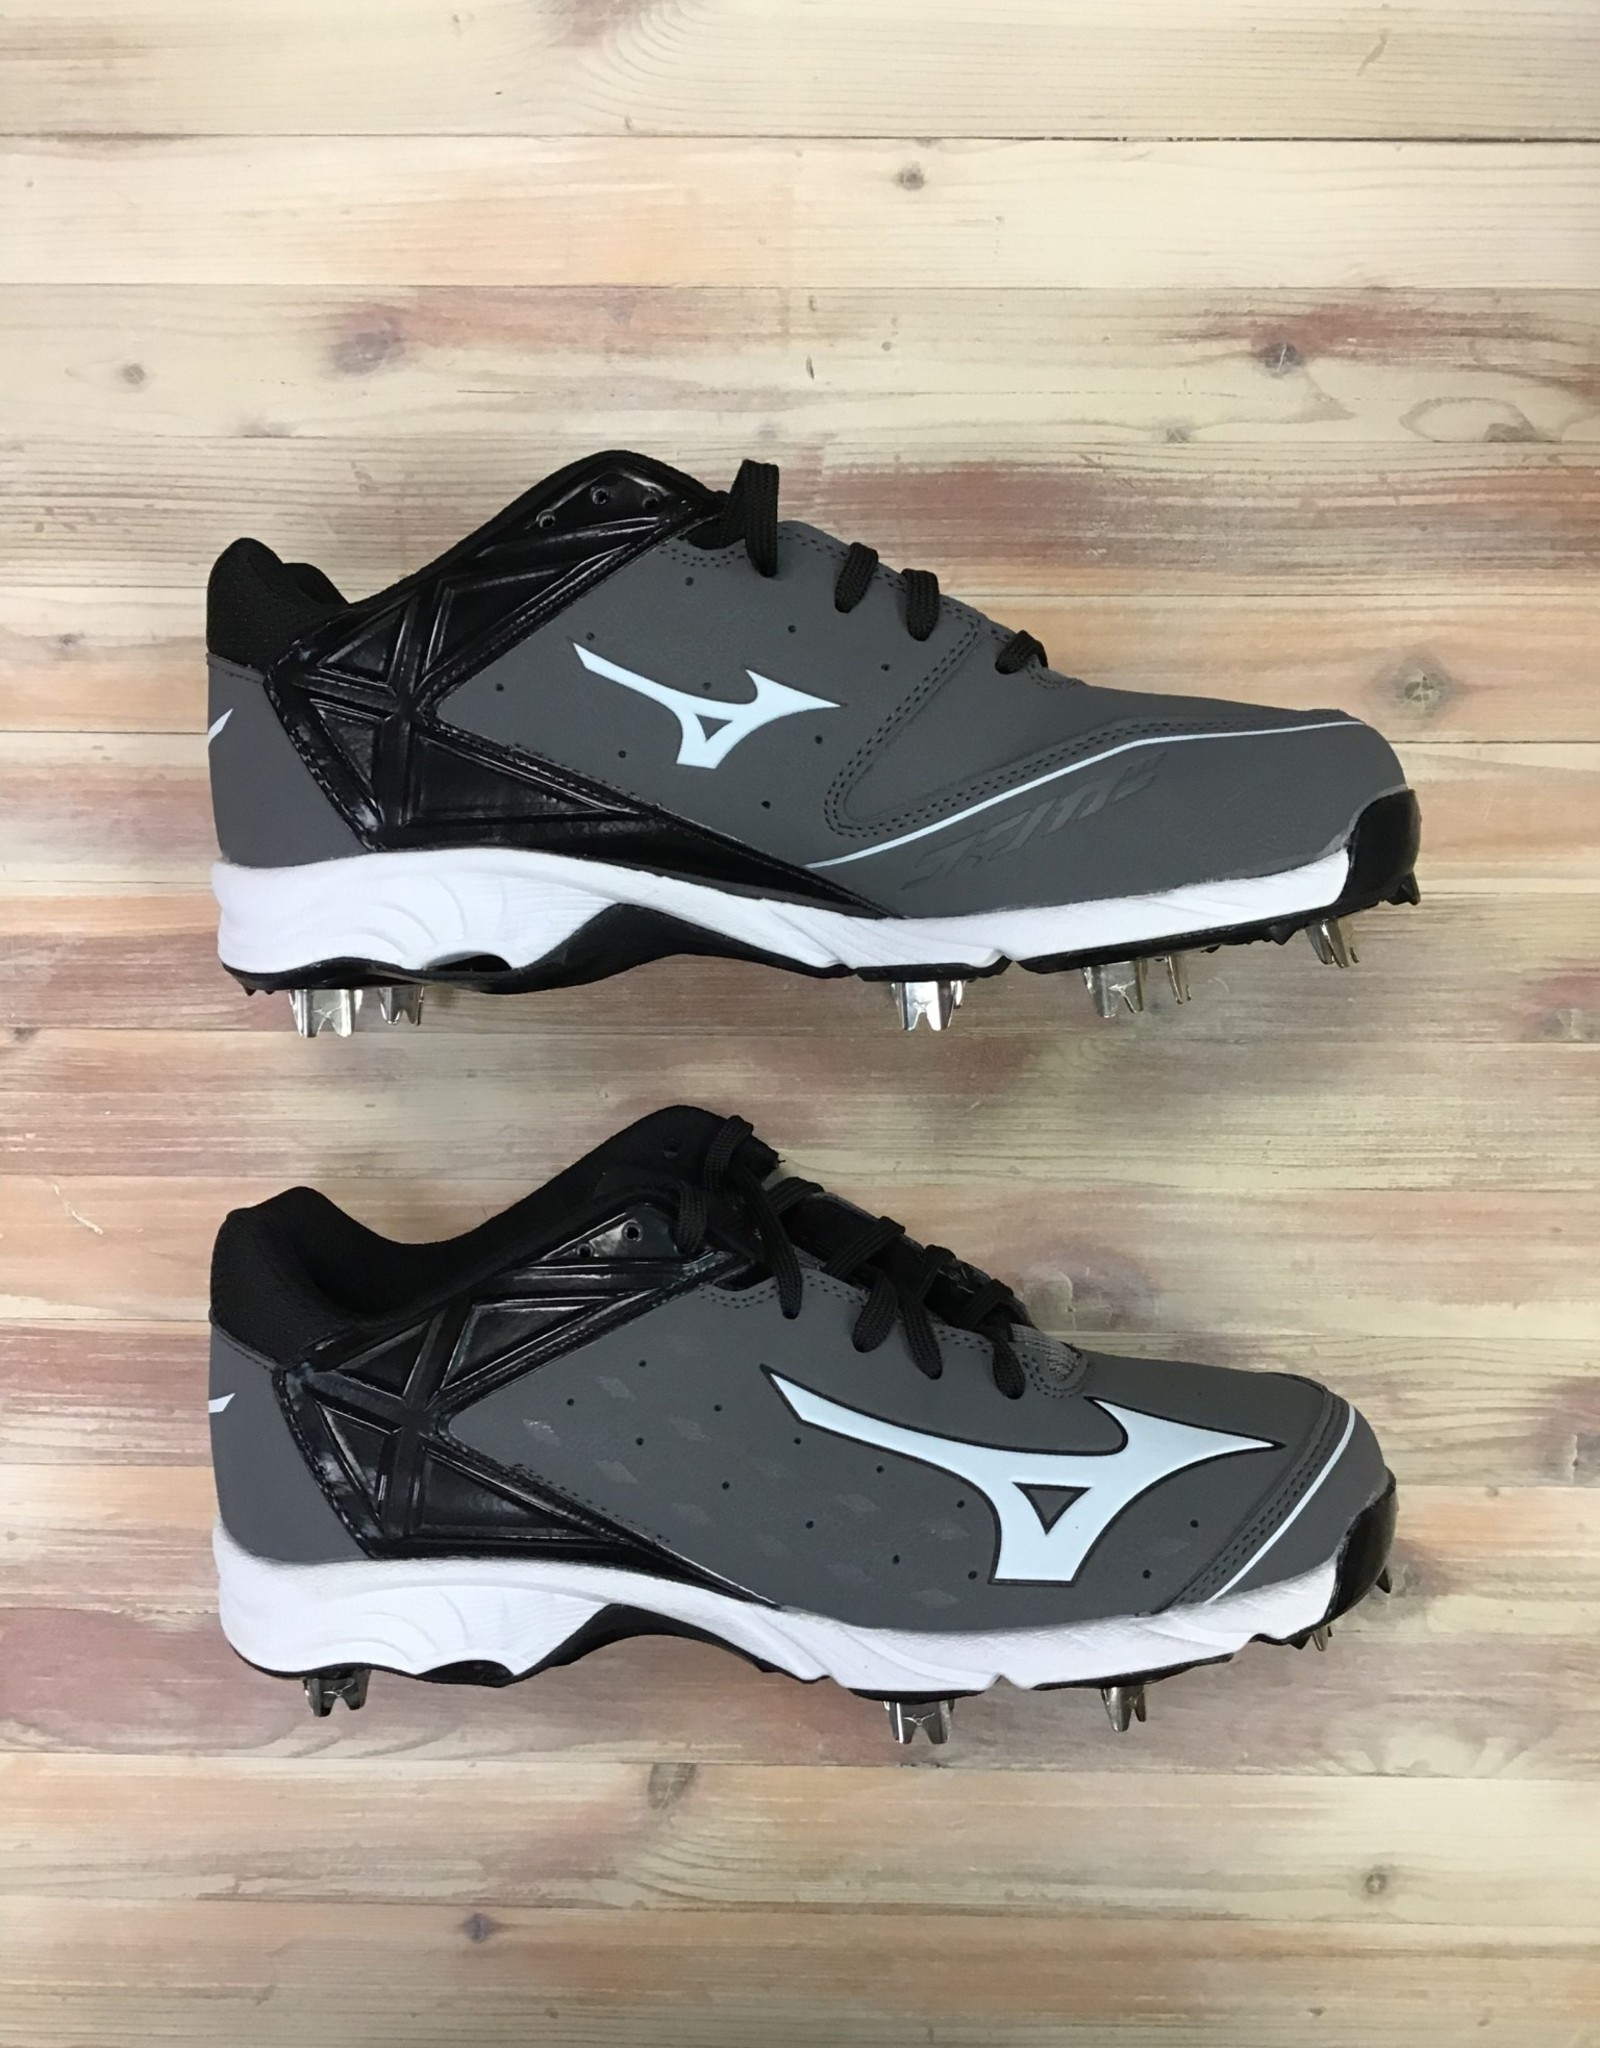 Mizuno Mizuno 9-Spike Adv. Swagger 2 Low Men's